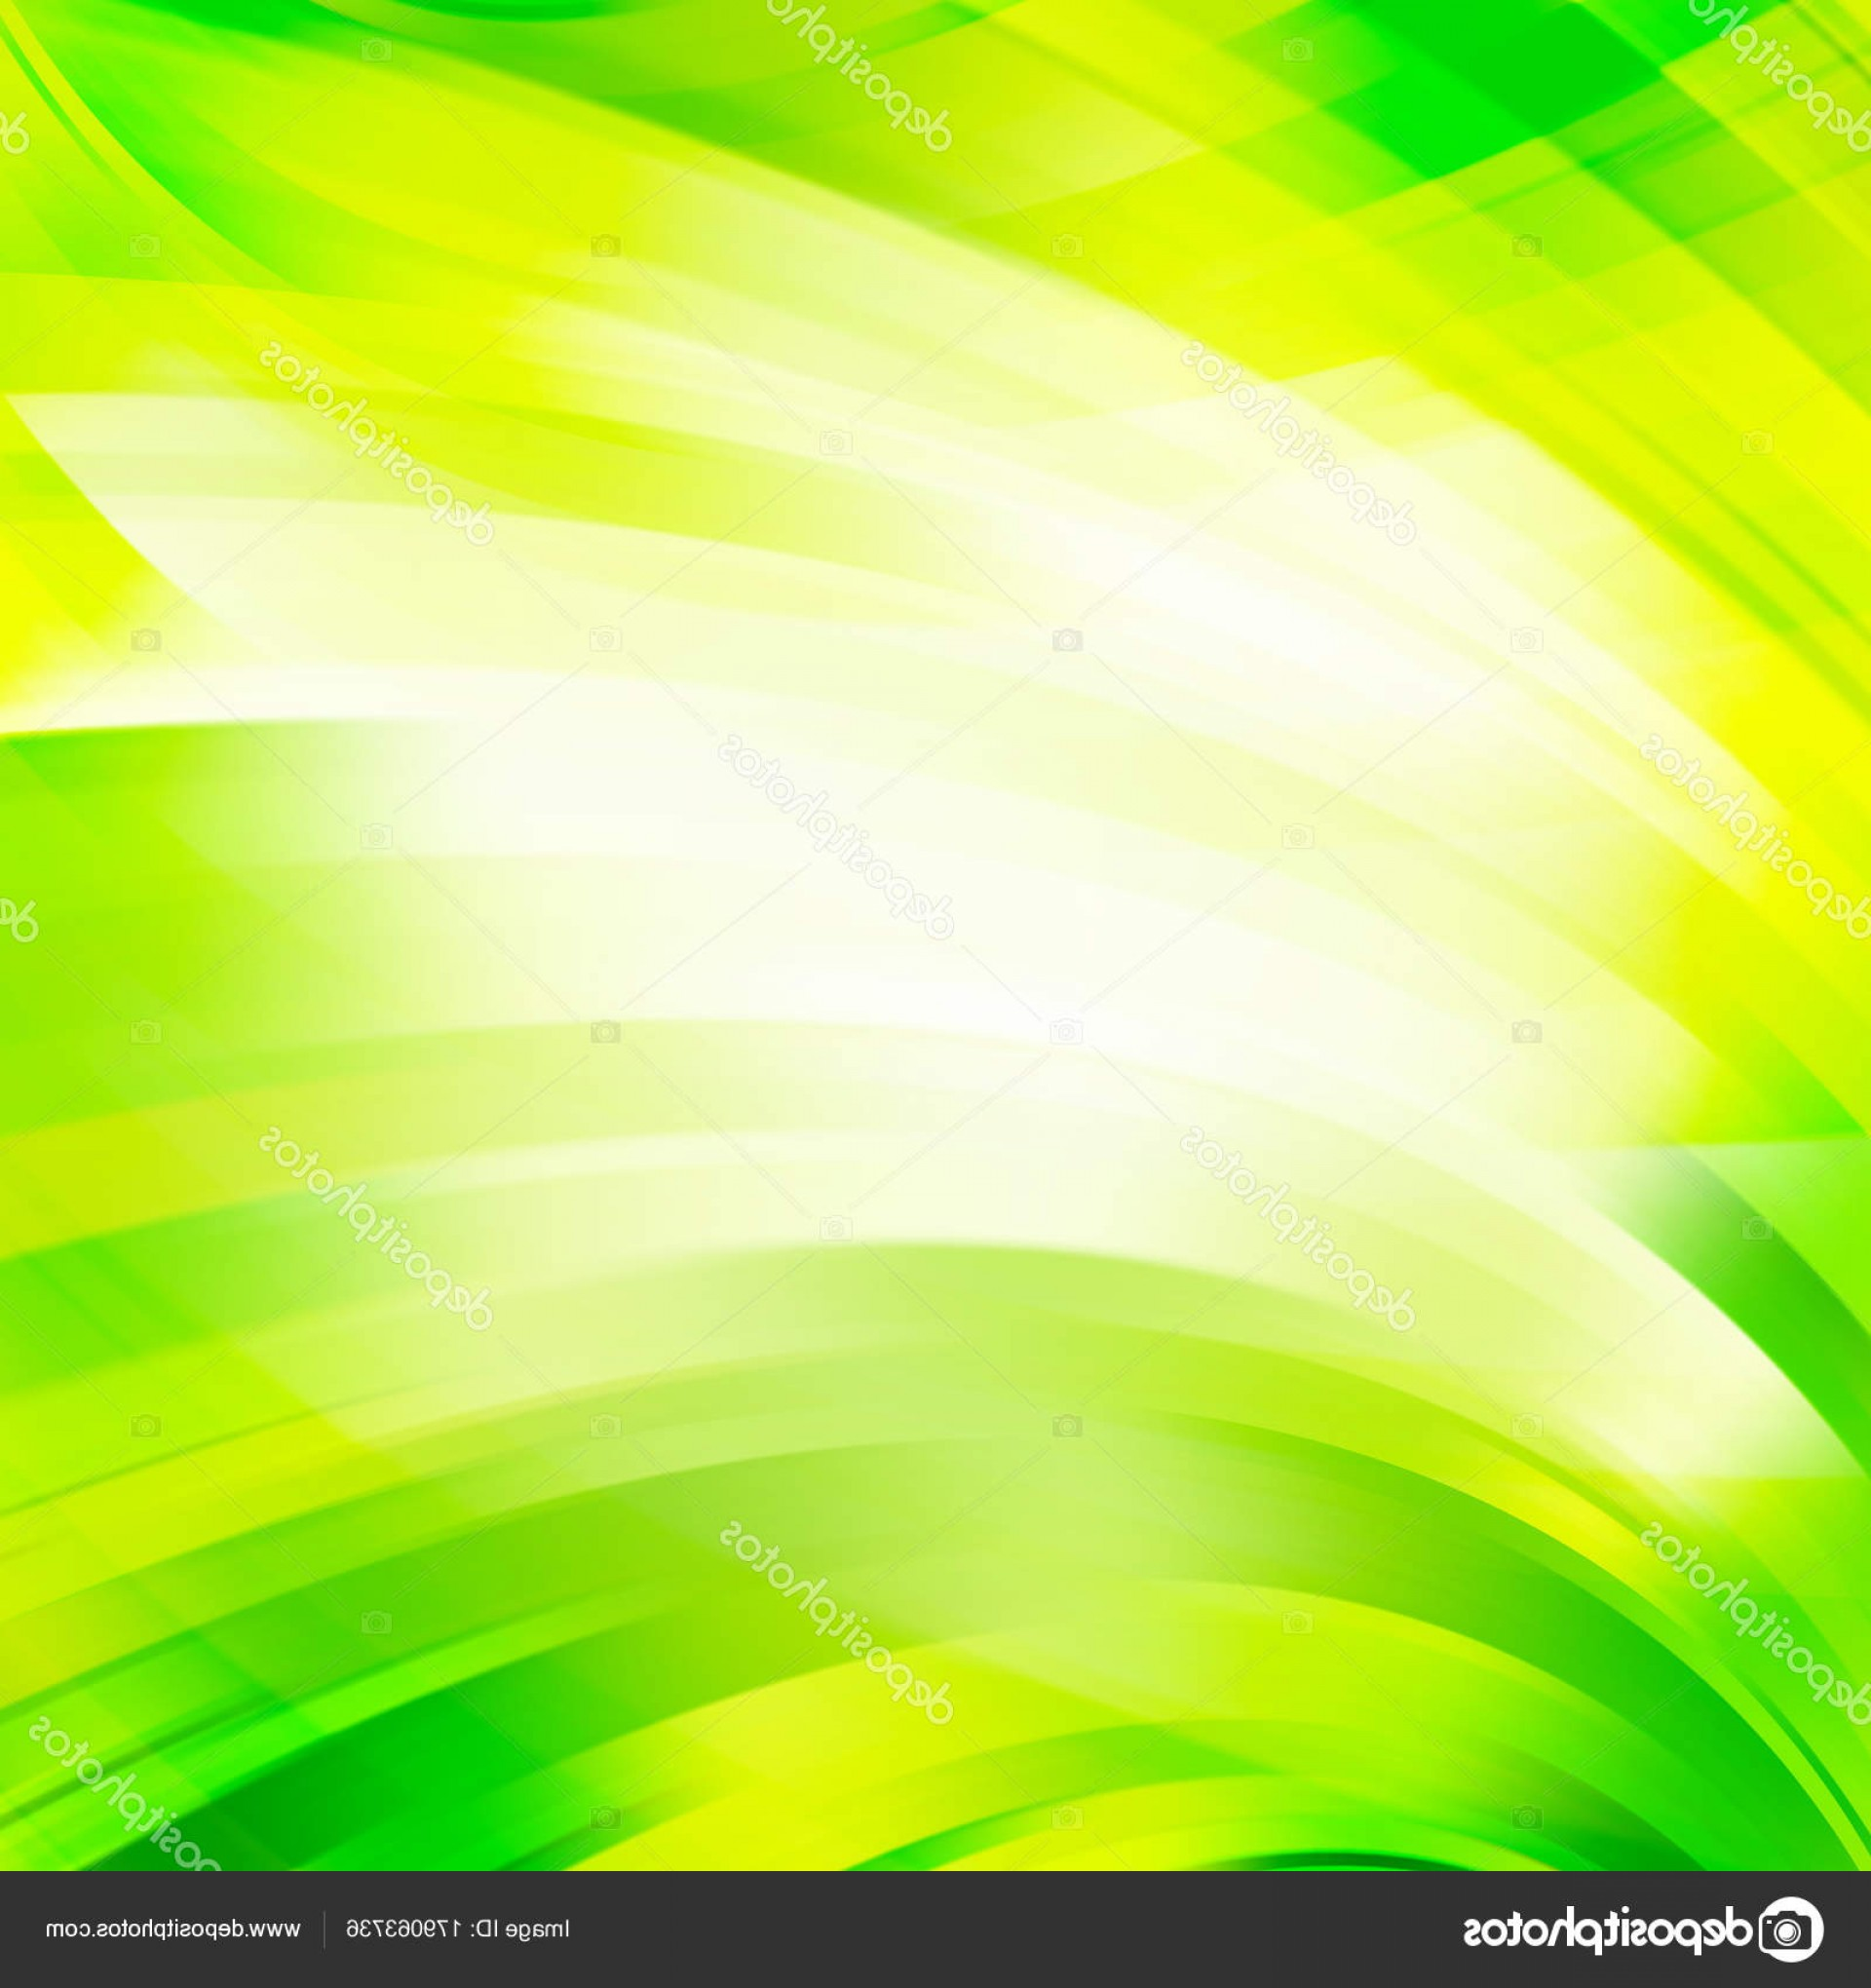 Green And White Vector: Stock Illustration Abstract Background With Swirl Waves